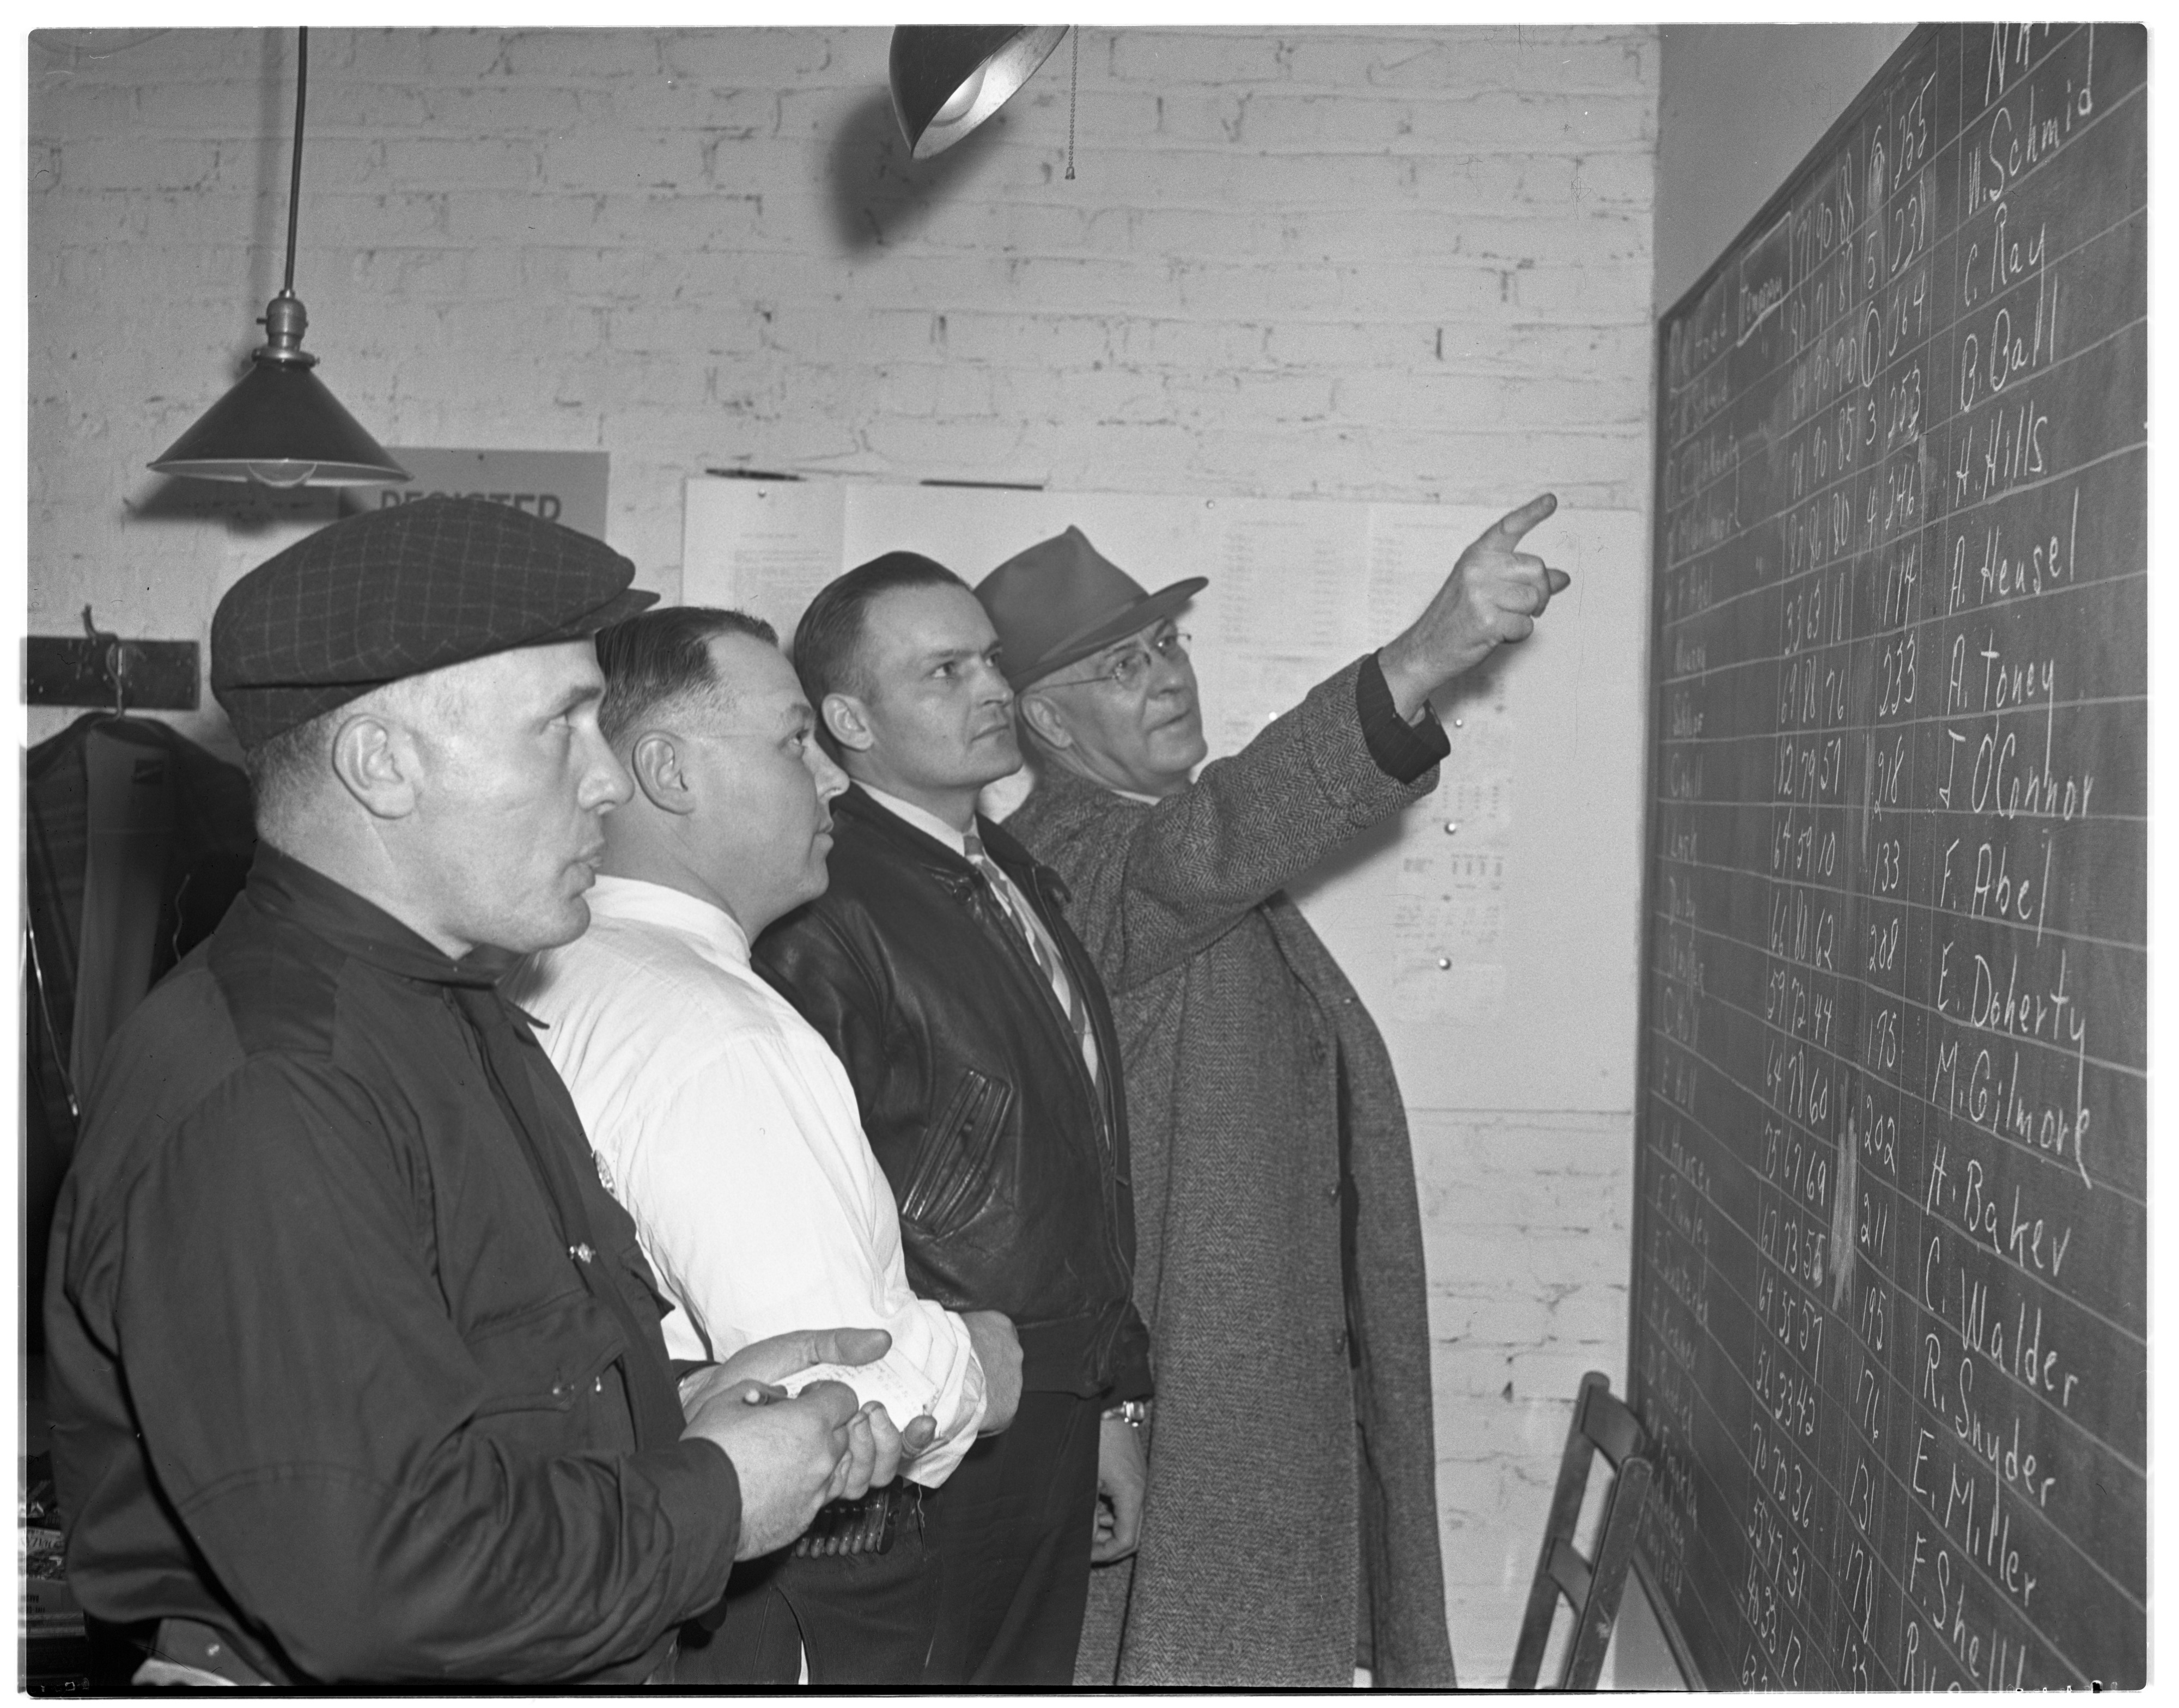 Sharpshooters Review Scores From A Match At The Ann Arbor Police Department's Indoor Range, April 1941 image